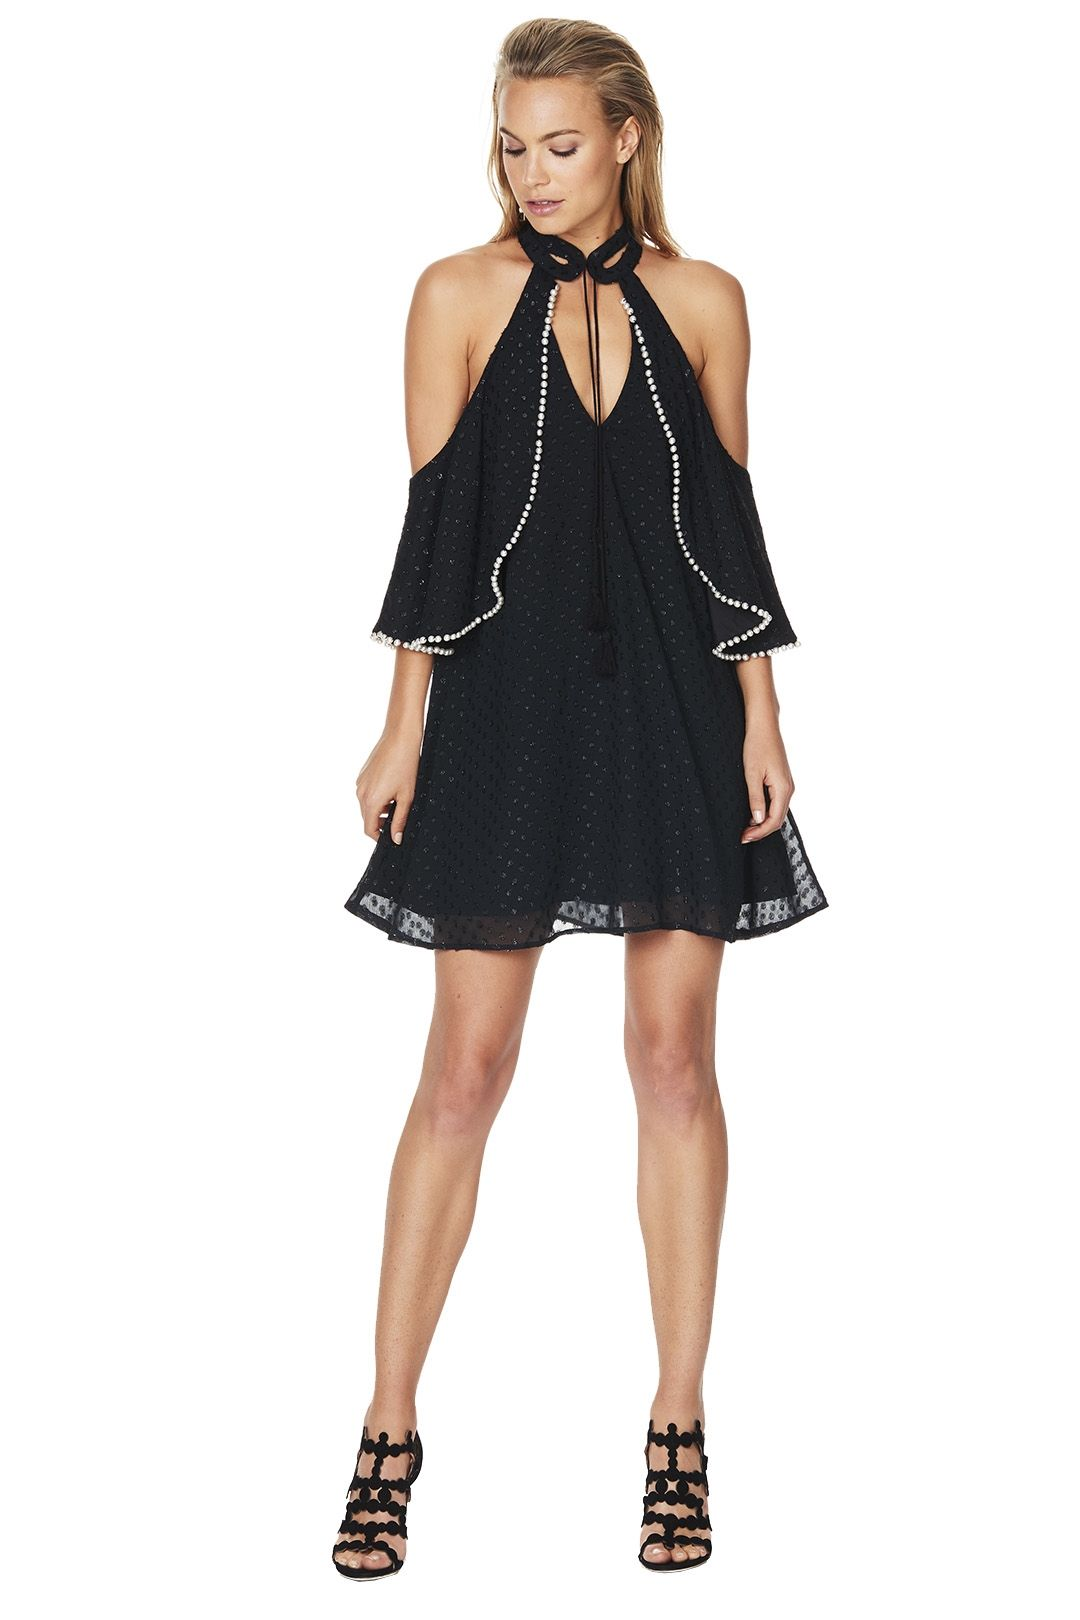 Talulah - Faith Mini Dress - Black - Front